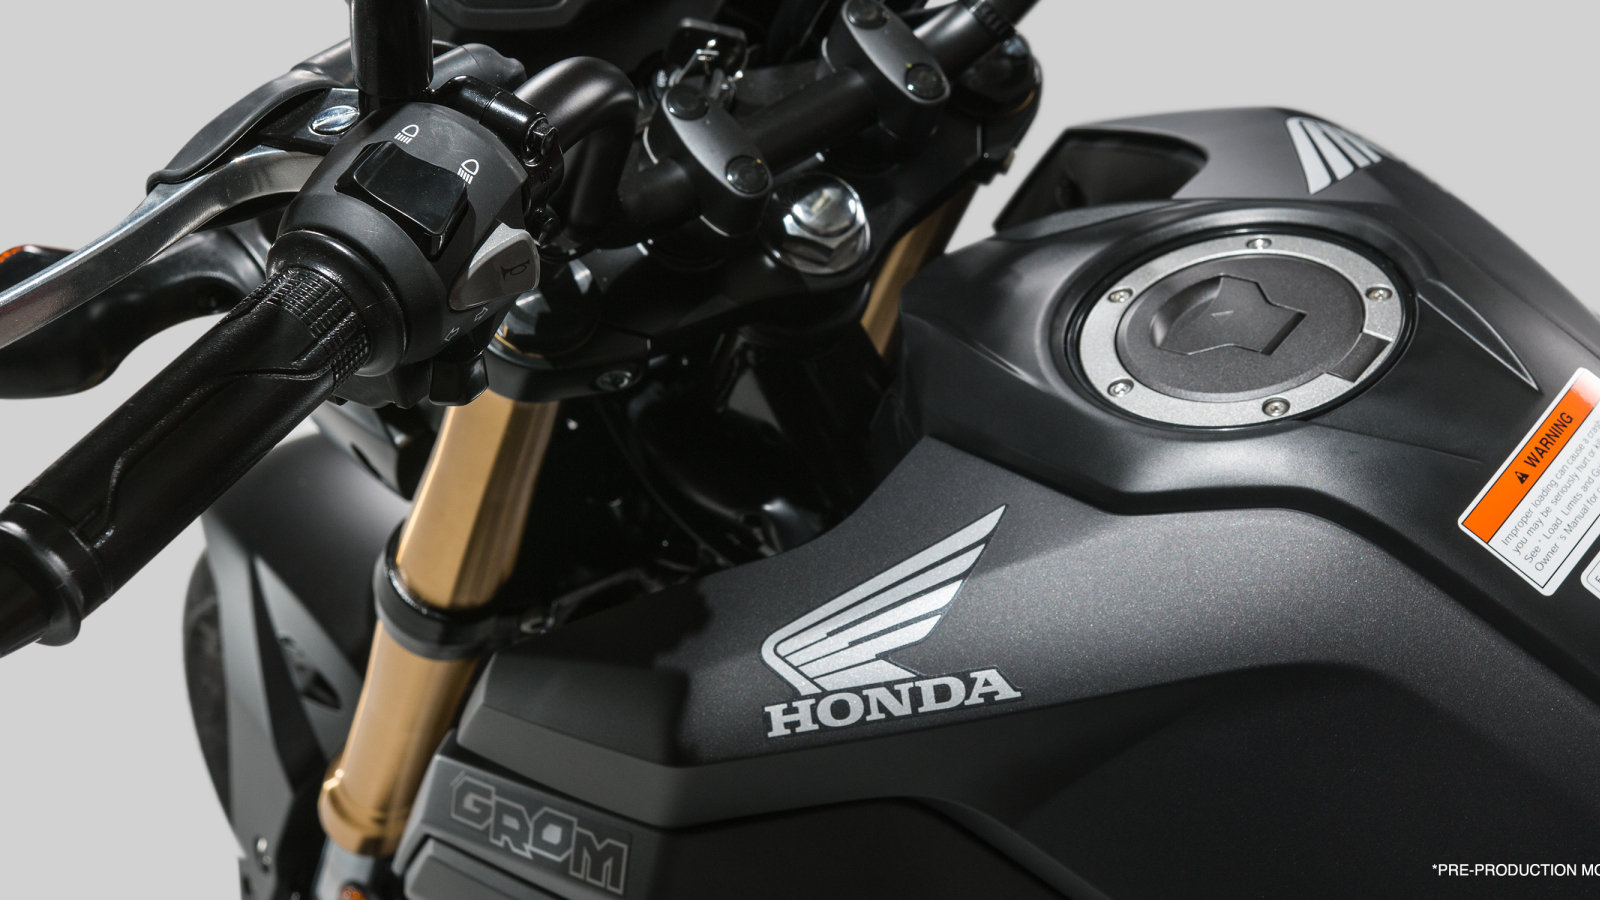 2017 honda grom picture 679123 motorcycle review top. Black Bedroom Furniture Sets. Home Design Ideas